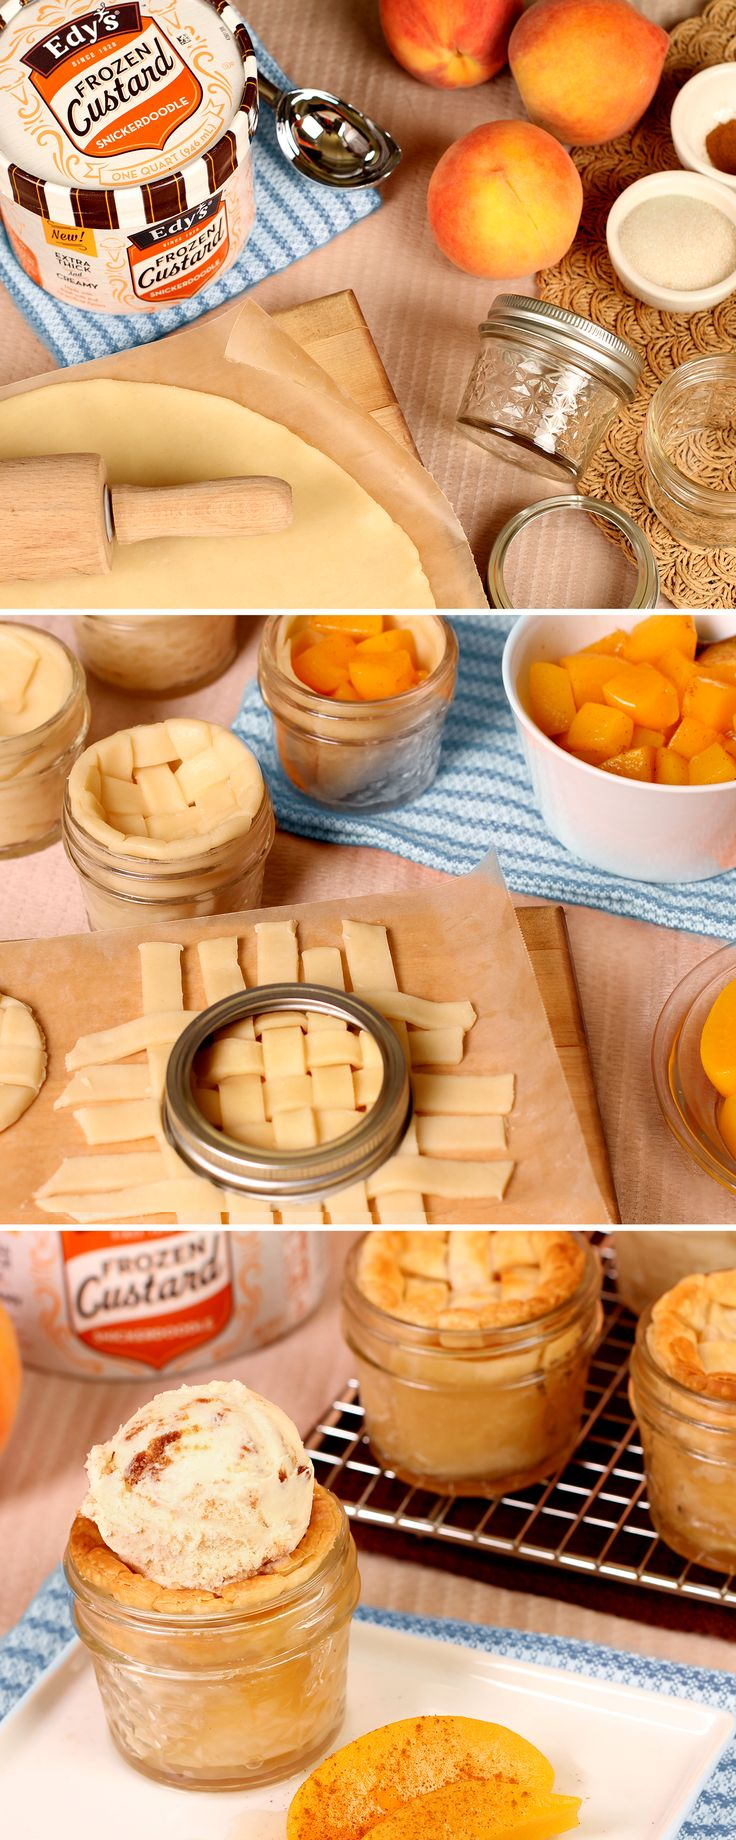 Your family will think this dessert recipe is peachy keen! Place your peach pie filling into small mason jars and cover it with pie dough in a lattice pattern. After you bake the pie and the crust is nice and flakey, top it off with a scoop of extra thick and creamy Snickerdoodle Frozen Custard! Who knew it could be so easy to serve up a summer classic?